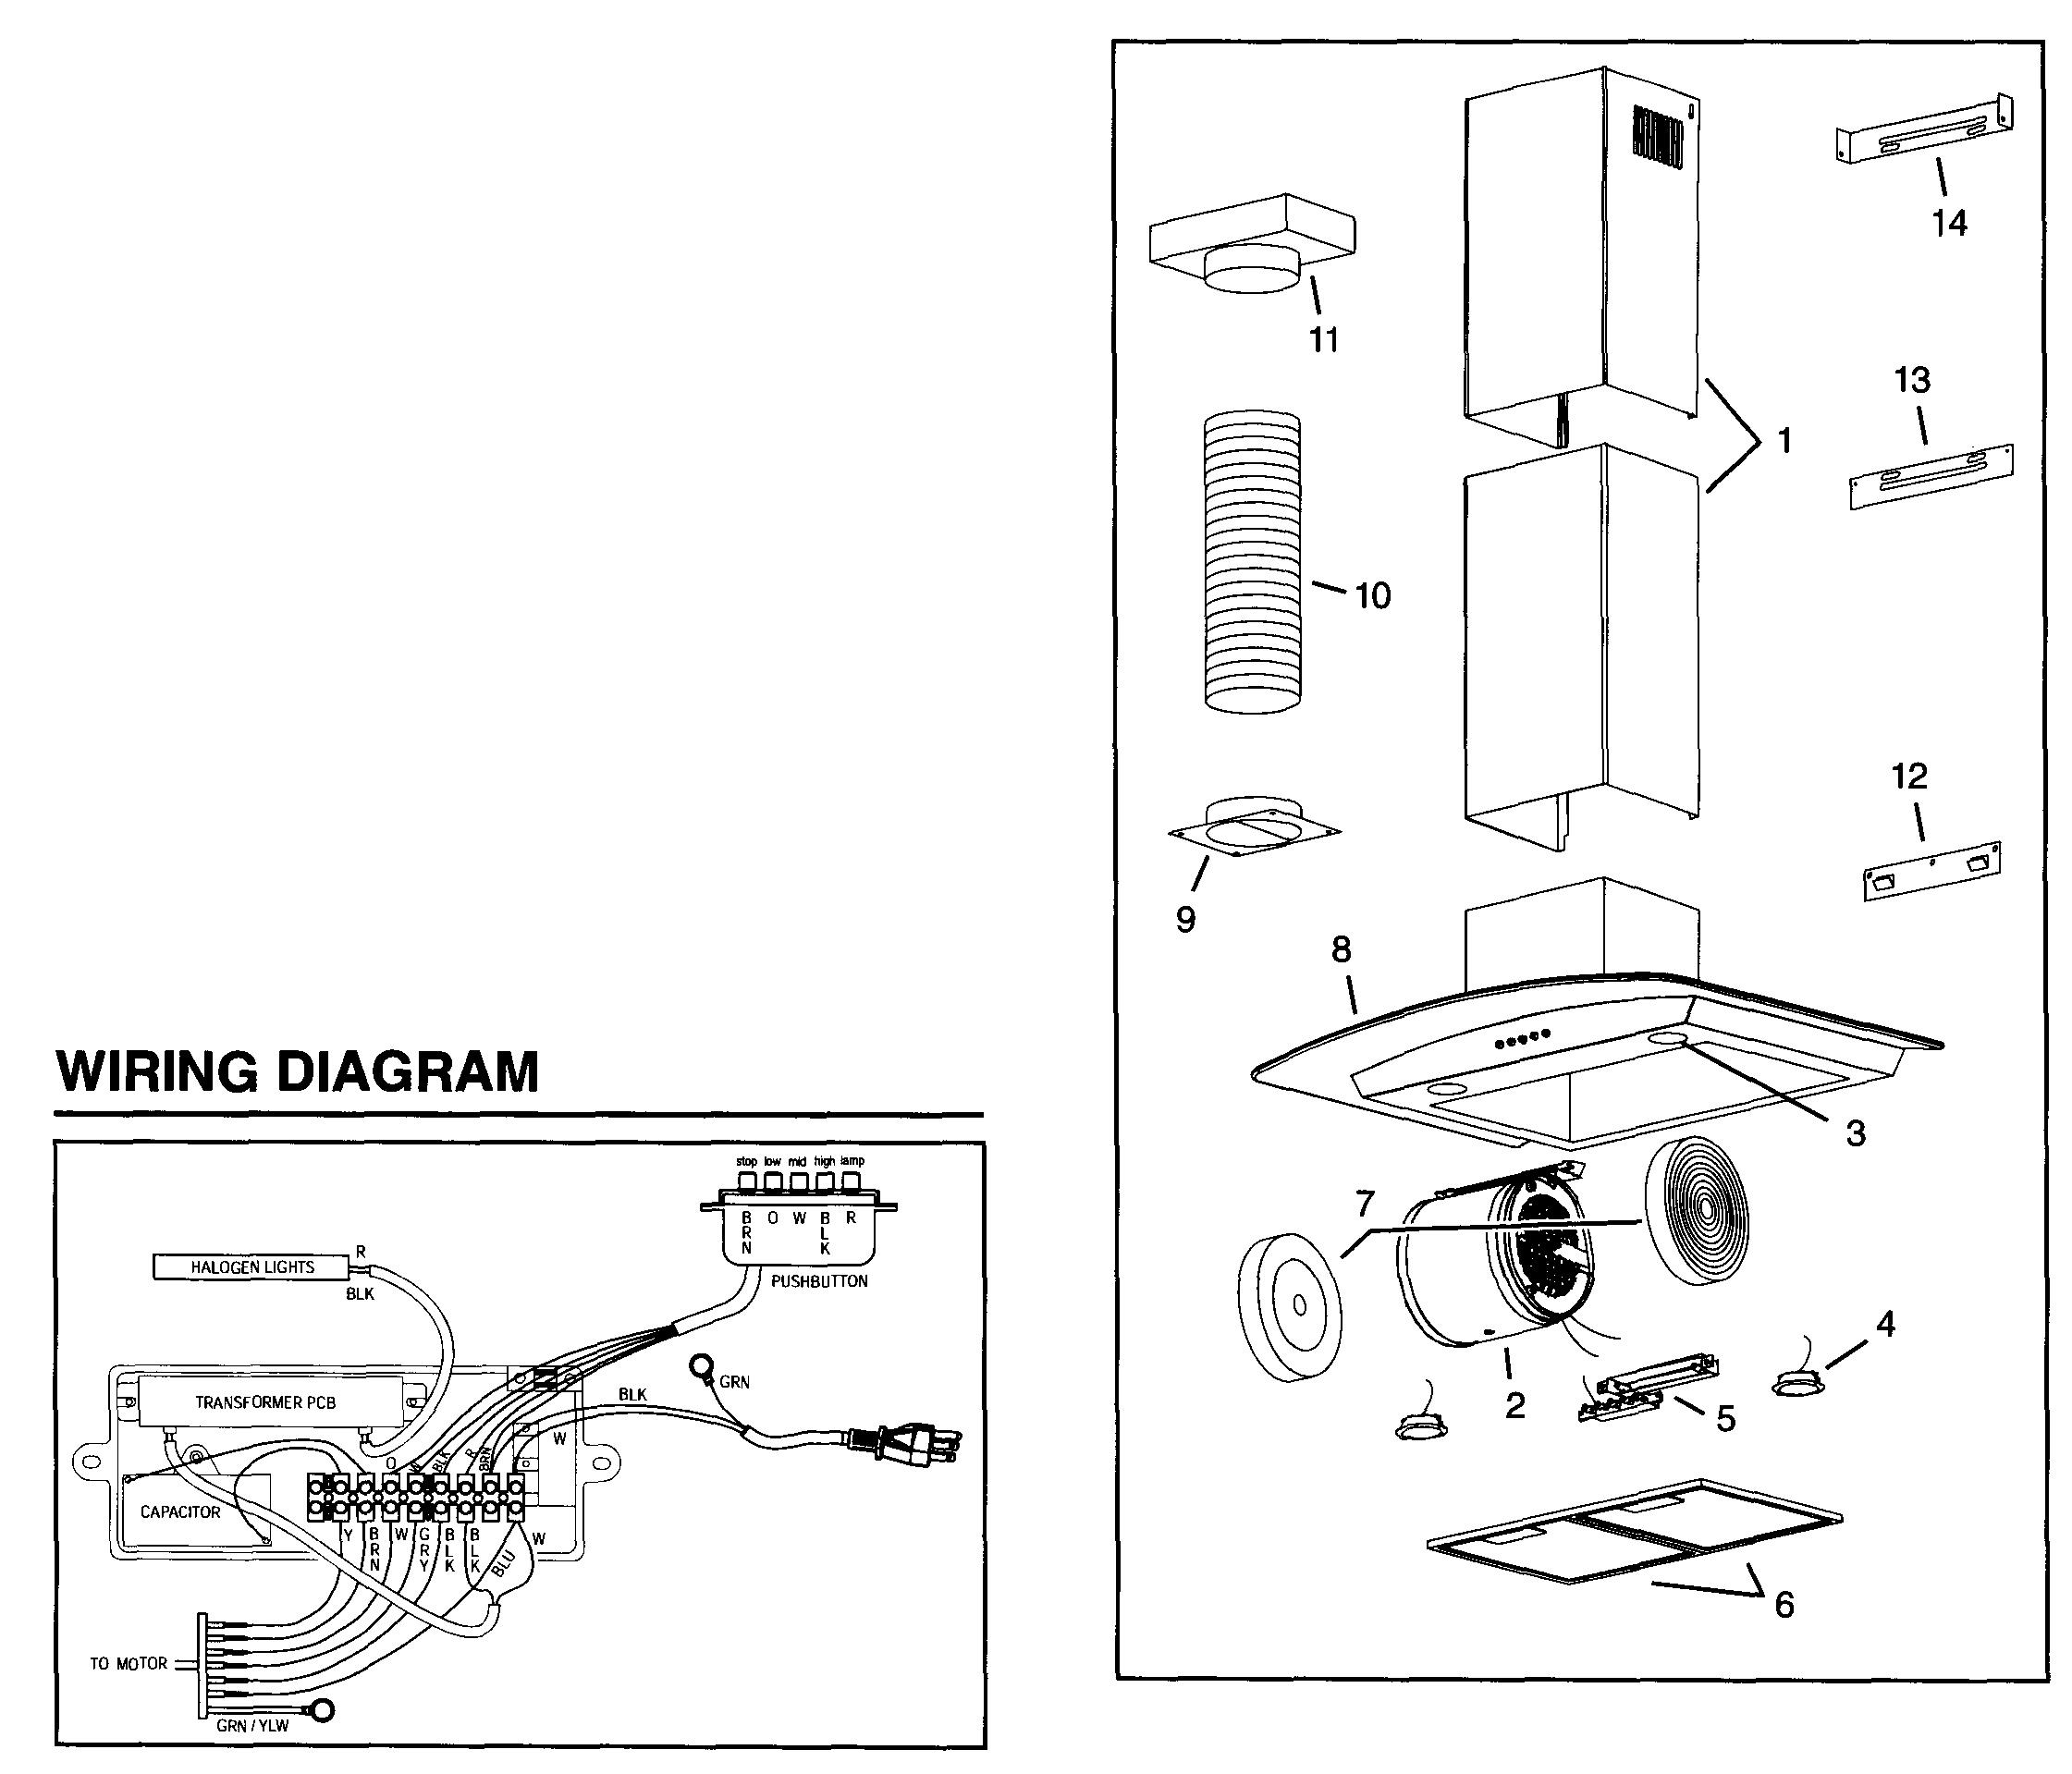 Broan Range Hood Wiring Diagram : 31 Wiring Diagram Images